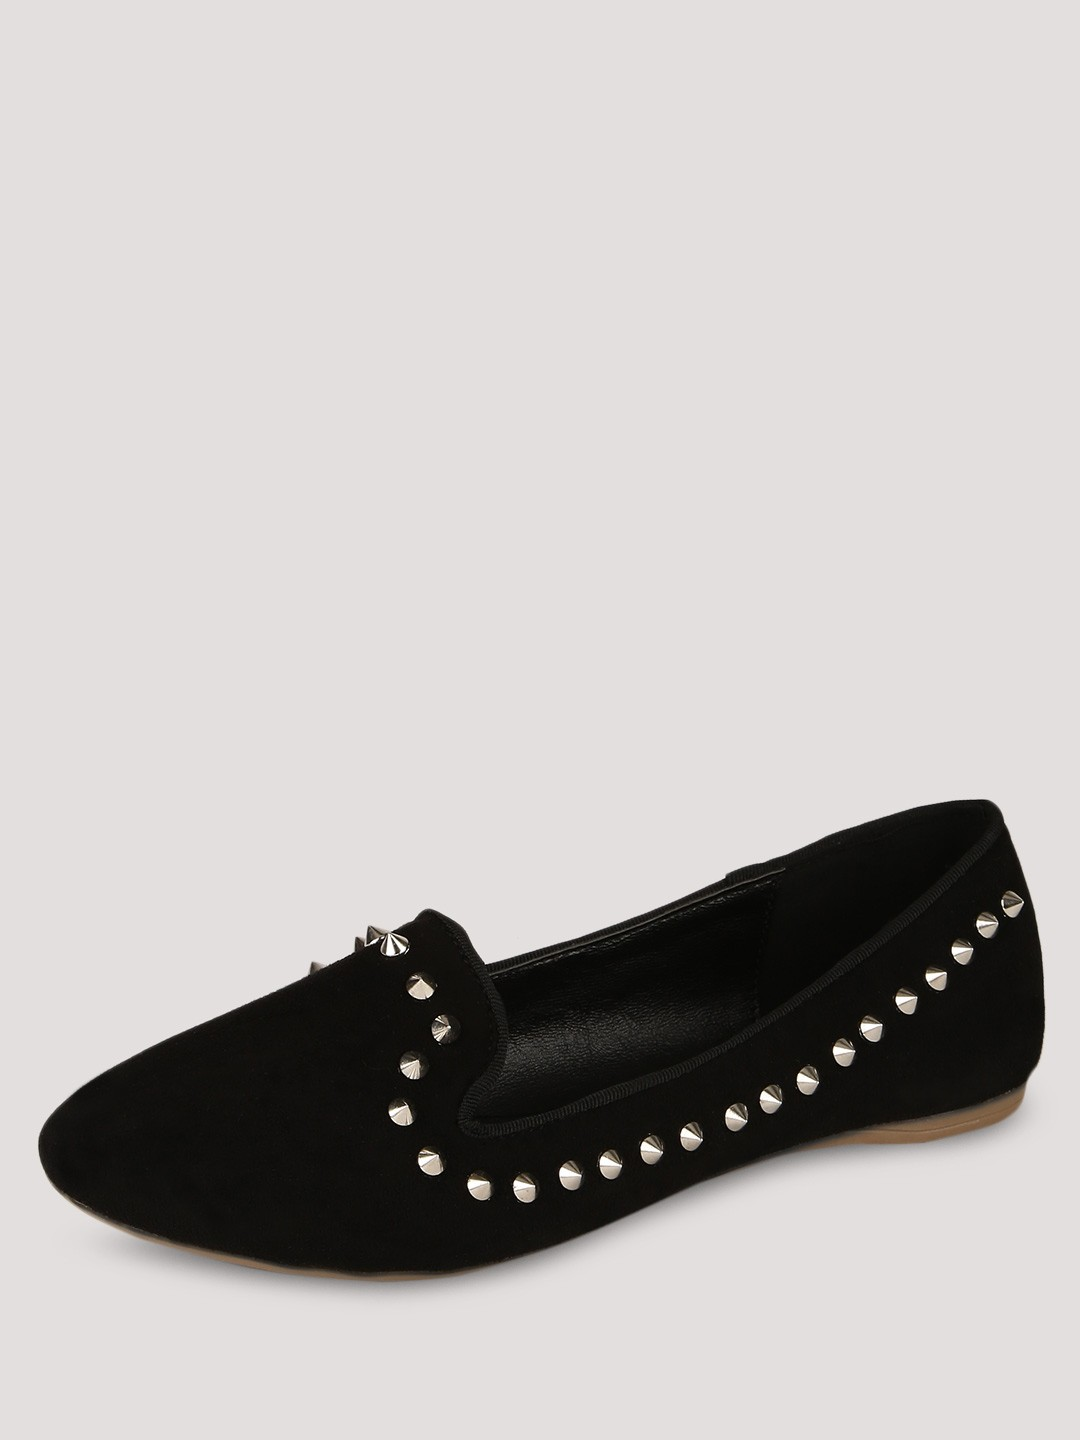 buy my foot couture studded slip on shoes for